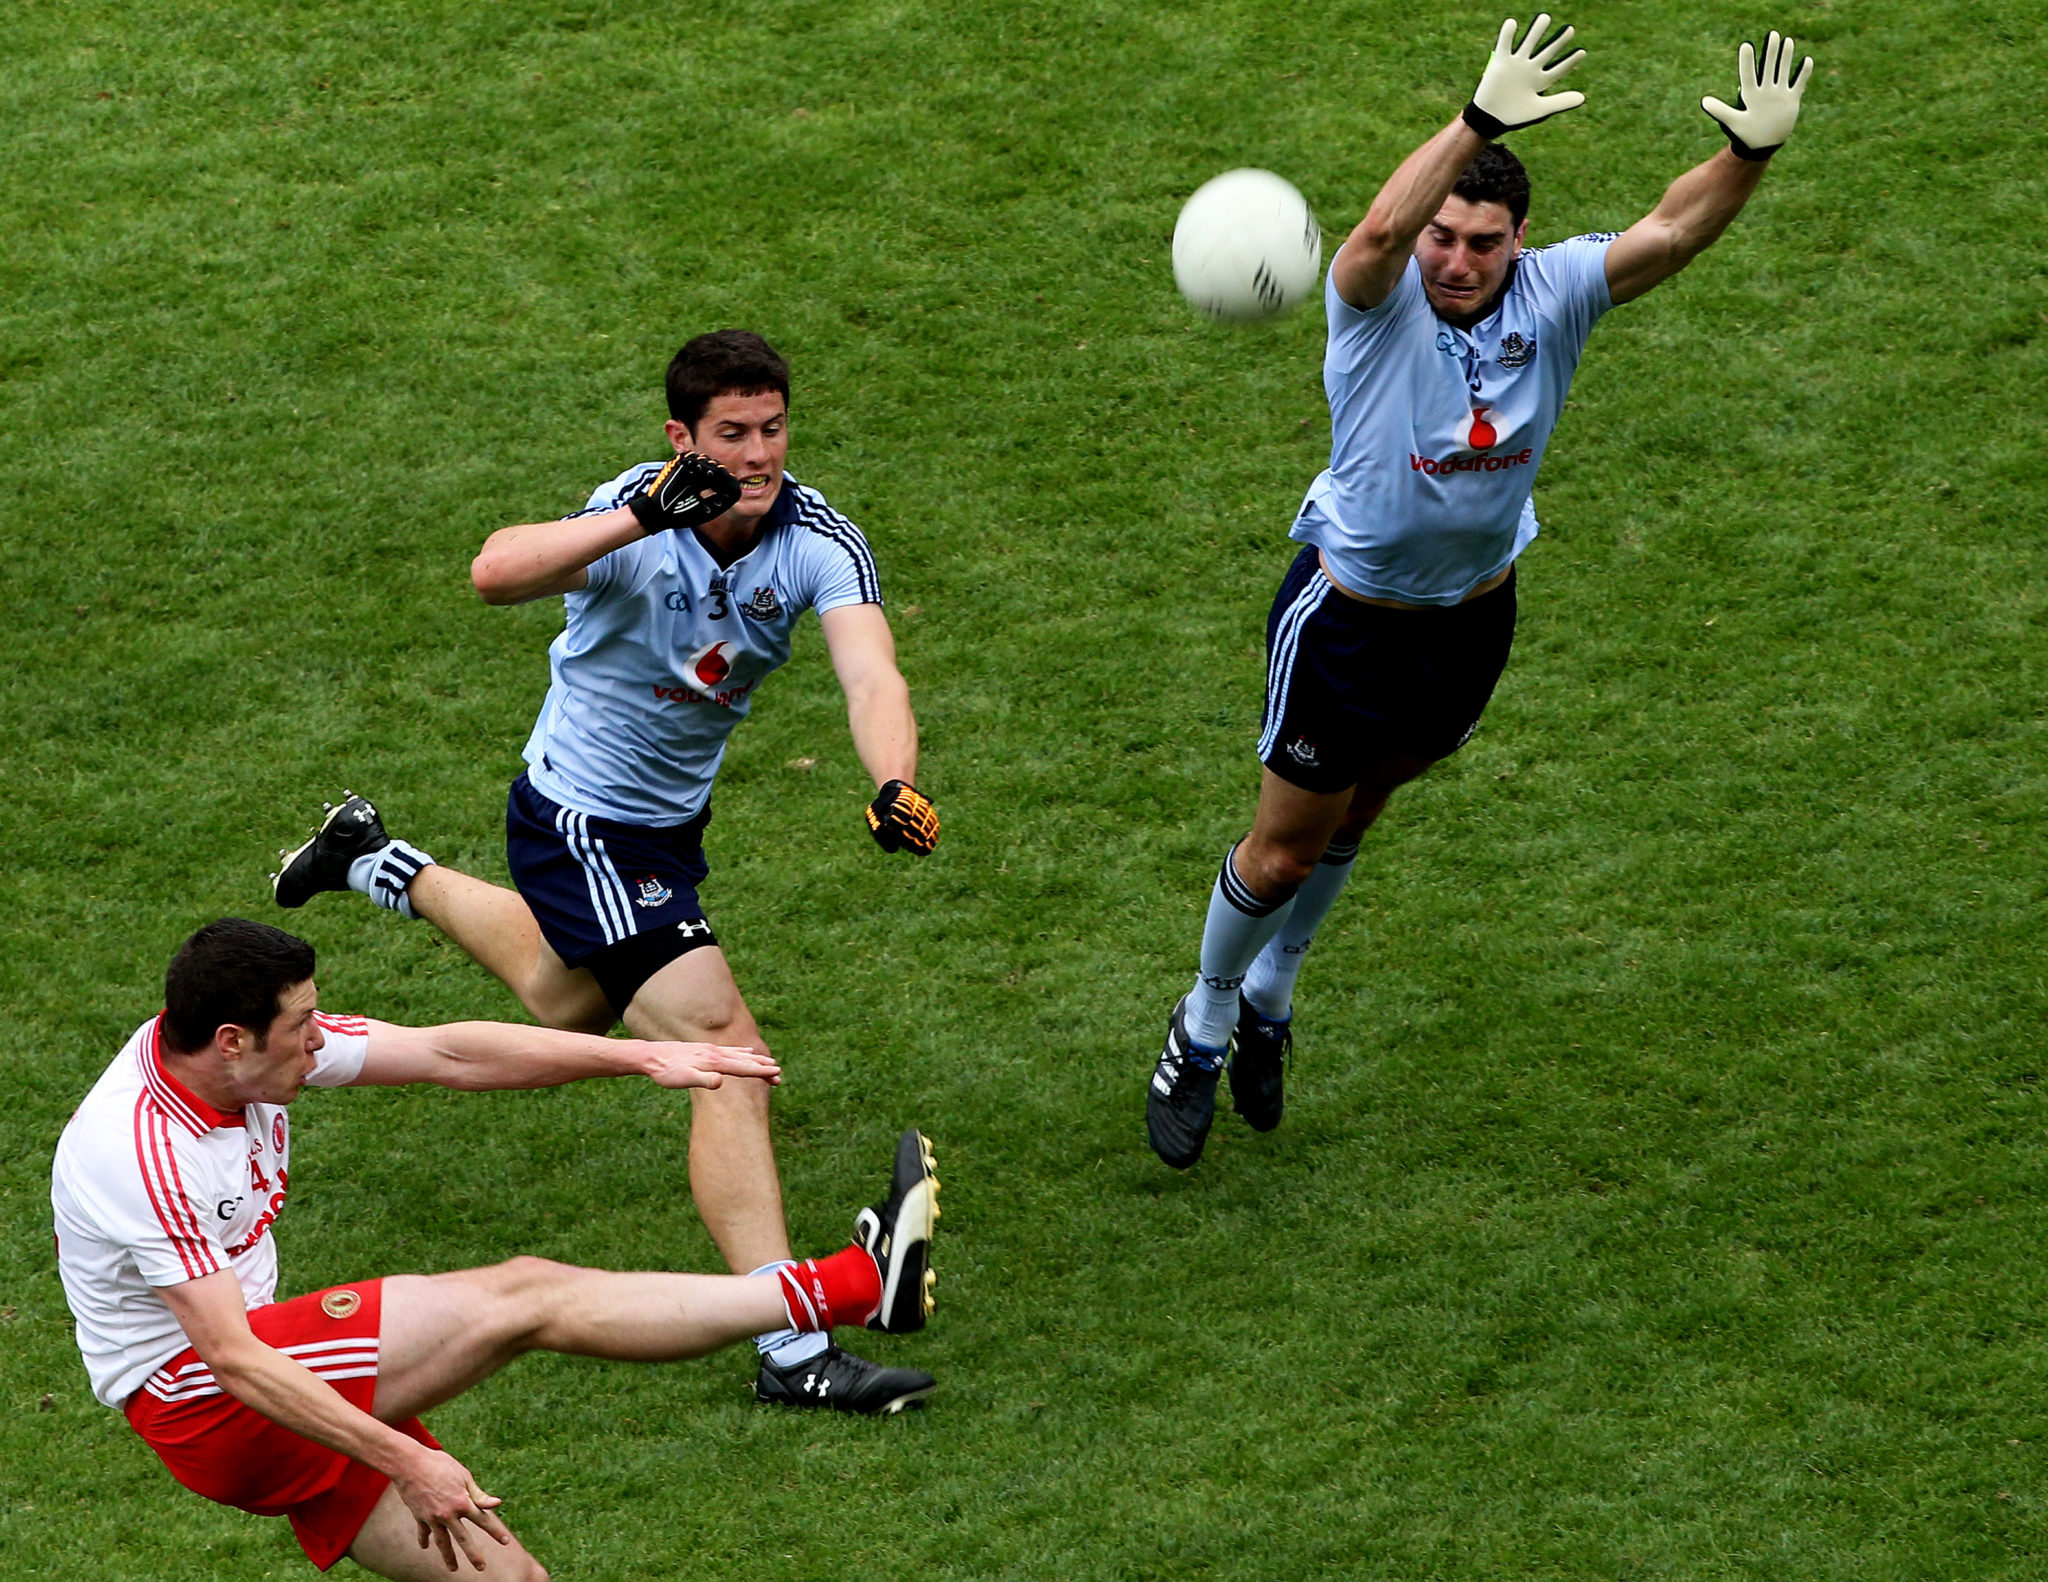 Bernard Brogan attempts to block a ball in a GAA match against Tyrone